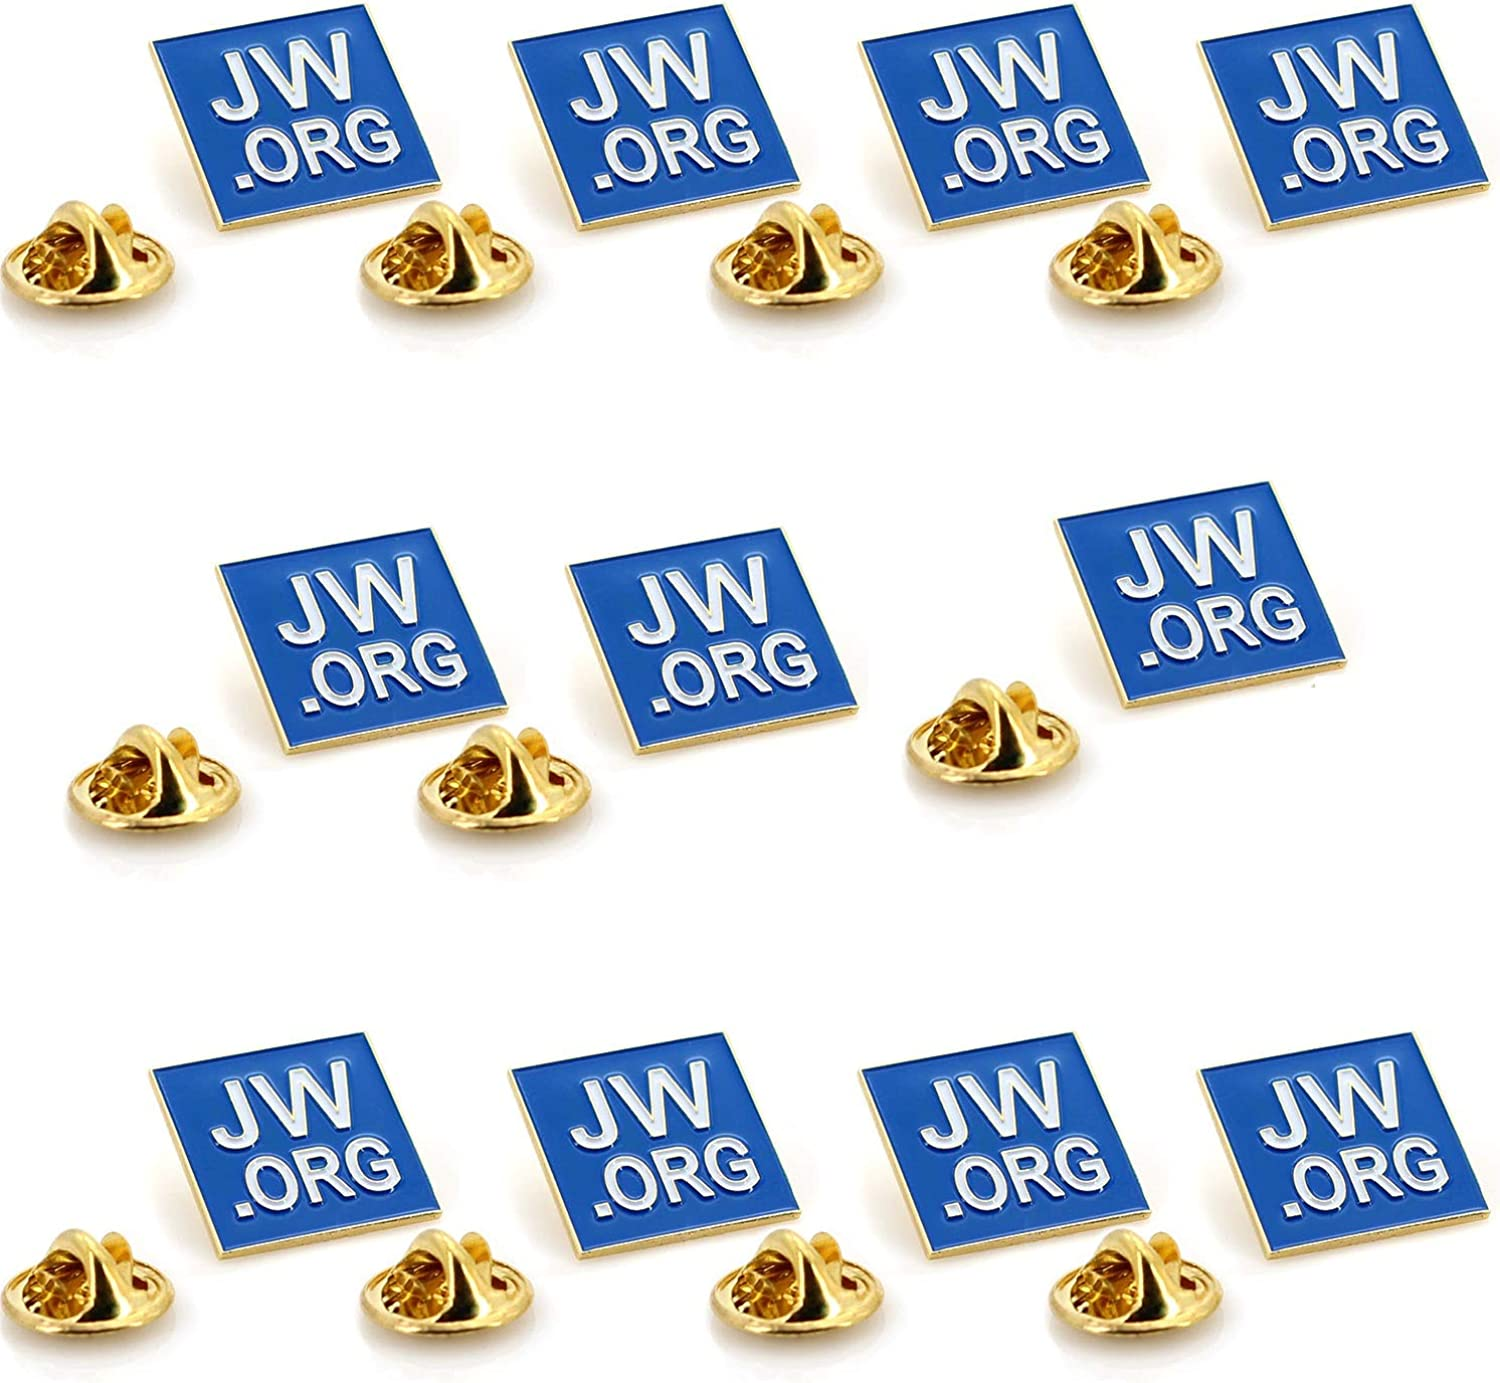 Amazon Com Jw Org Square Gold Lapel Pin Jehovah Witness 1 Square Blue Lapel Pin Jw Org Neck Tie Hat Tack Clip Women Or Men Suits 10 Pack Jewelry In this video, we discuss what it's really like for members to attend meetings.for decades. jw org square gold lapel pin jehovah